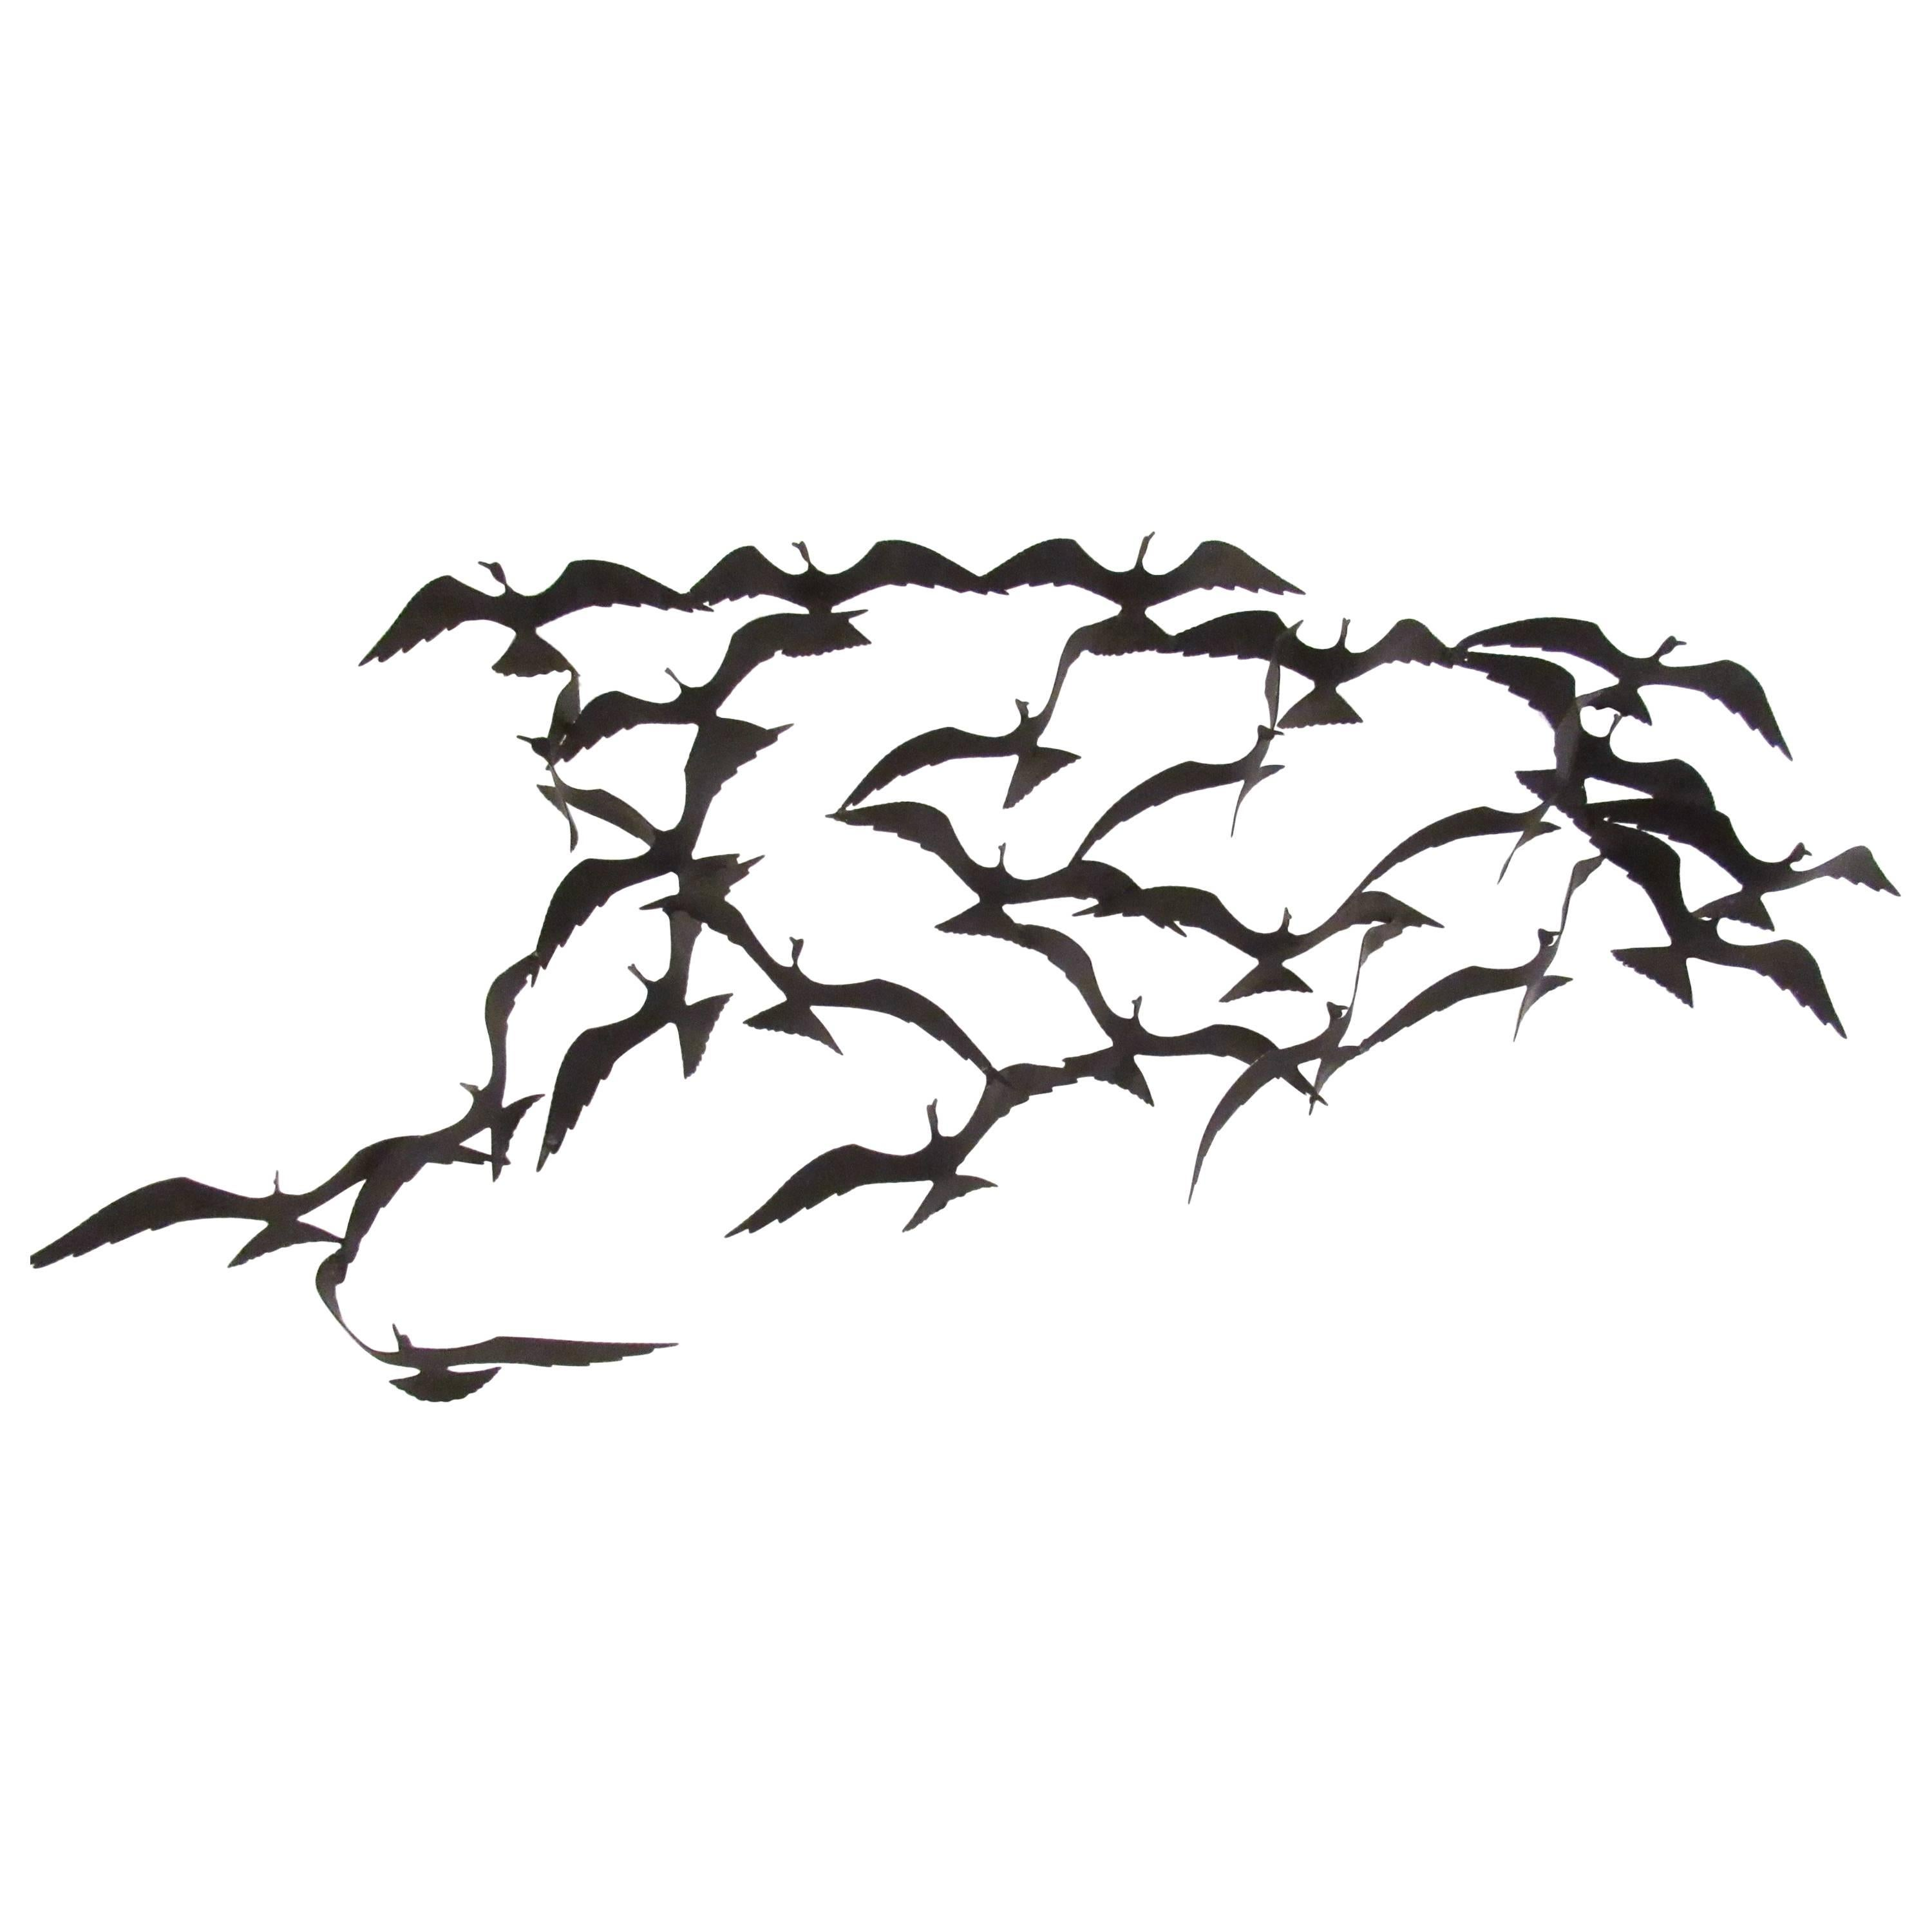 large modern wall art for sale at 1stdibs 70s Style Home Decor vintage modern metal wall art birds in flight